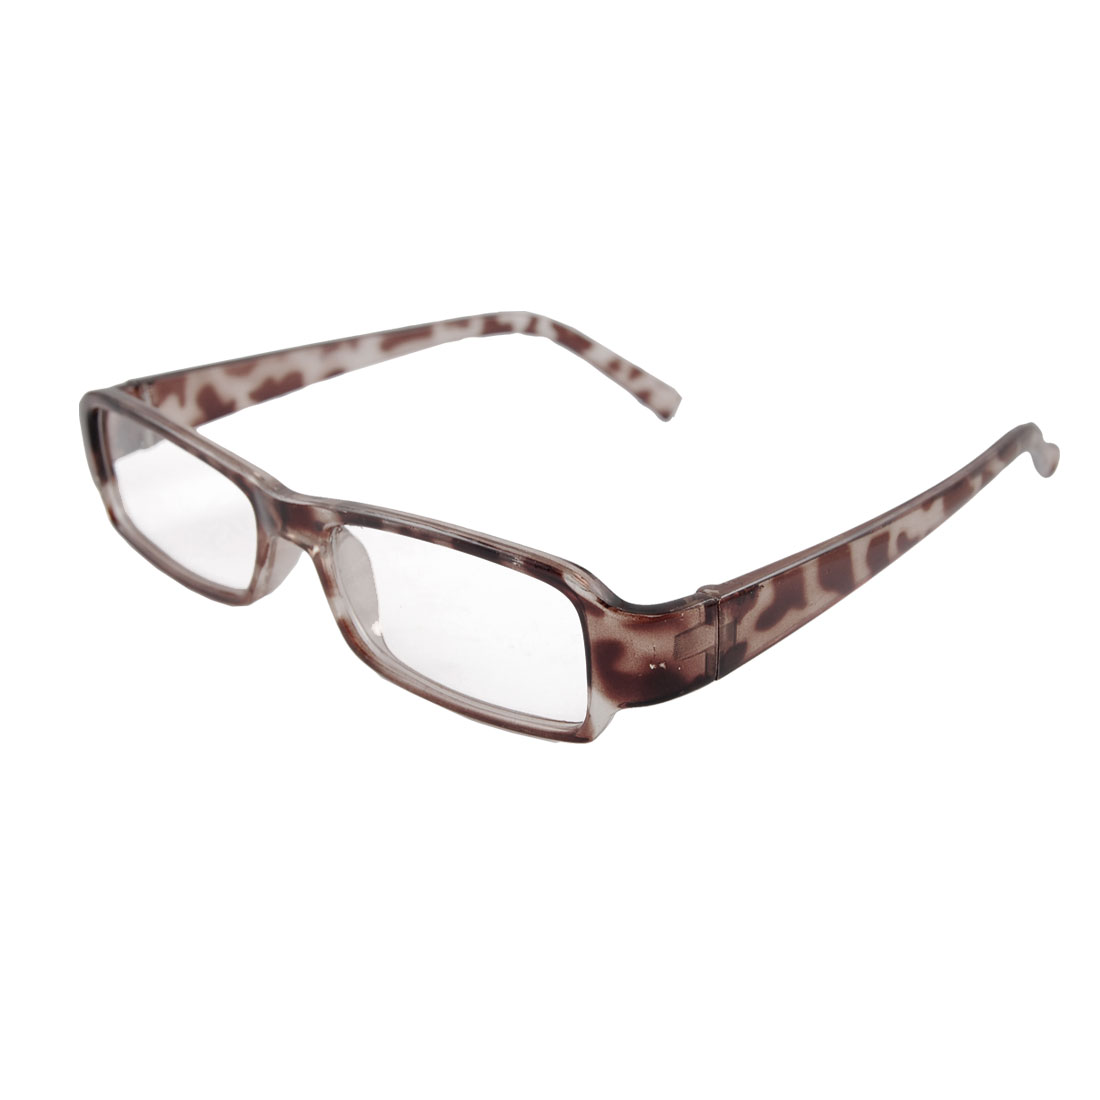 Leopard Pattern Full Frame Arms Clear Lens Eyeglasses Clear Brown for Women